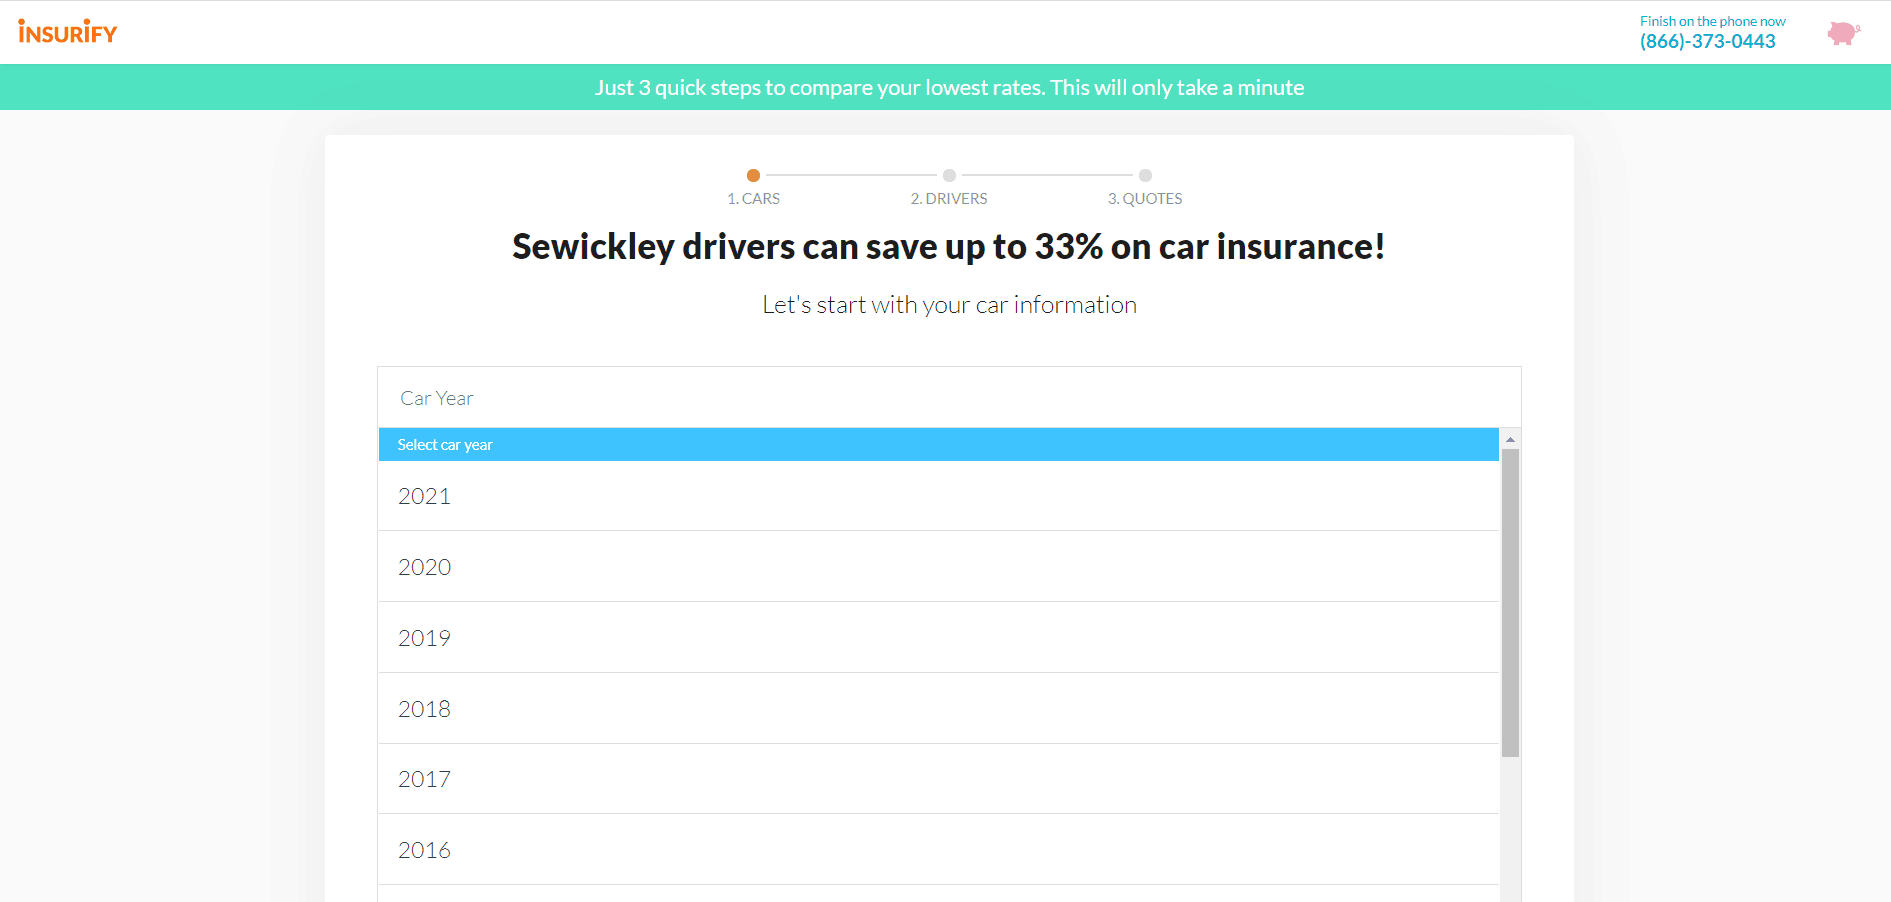 Insurify Website Online Car Insurance Quote Car Information